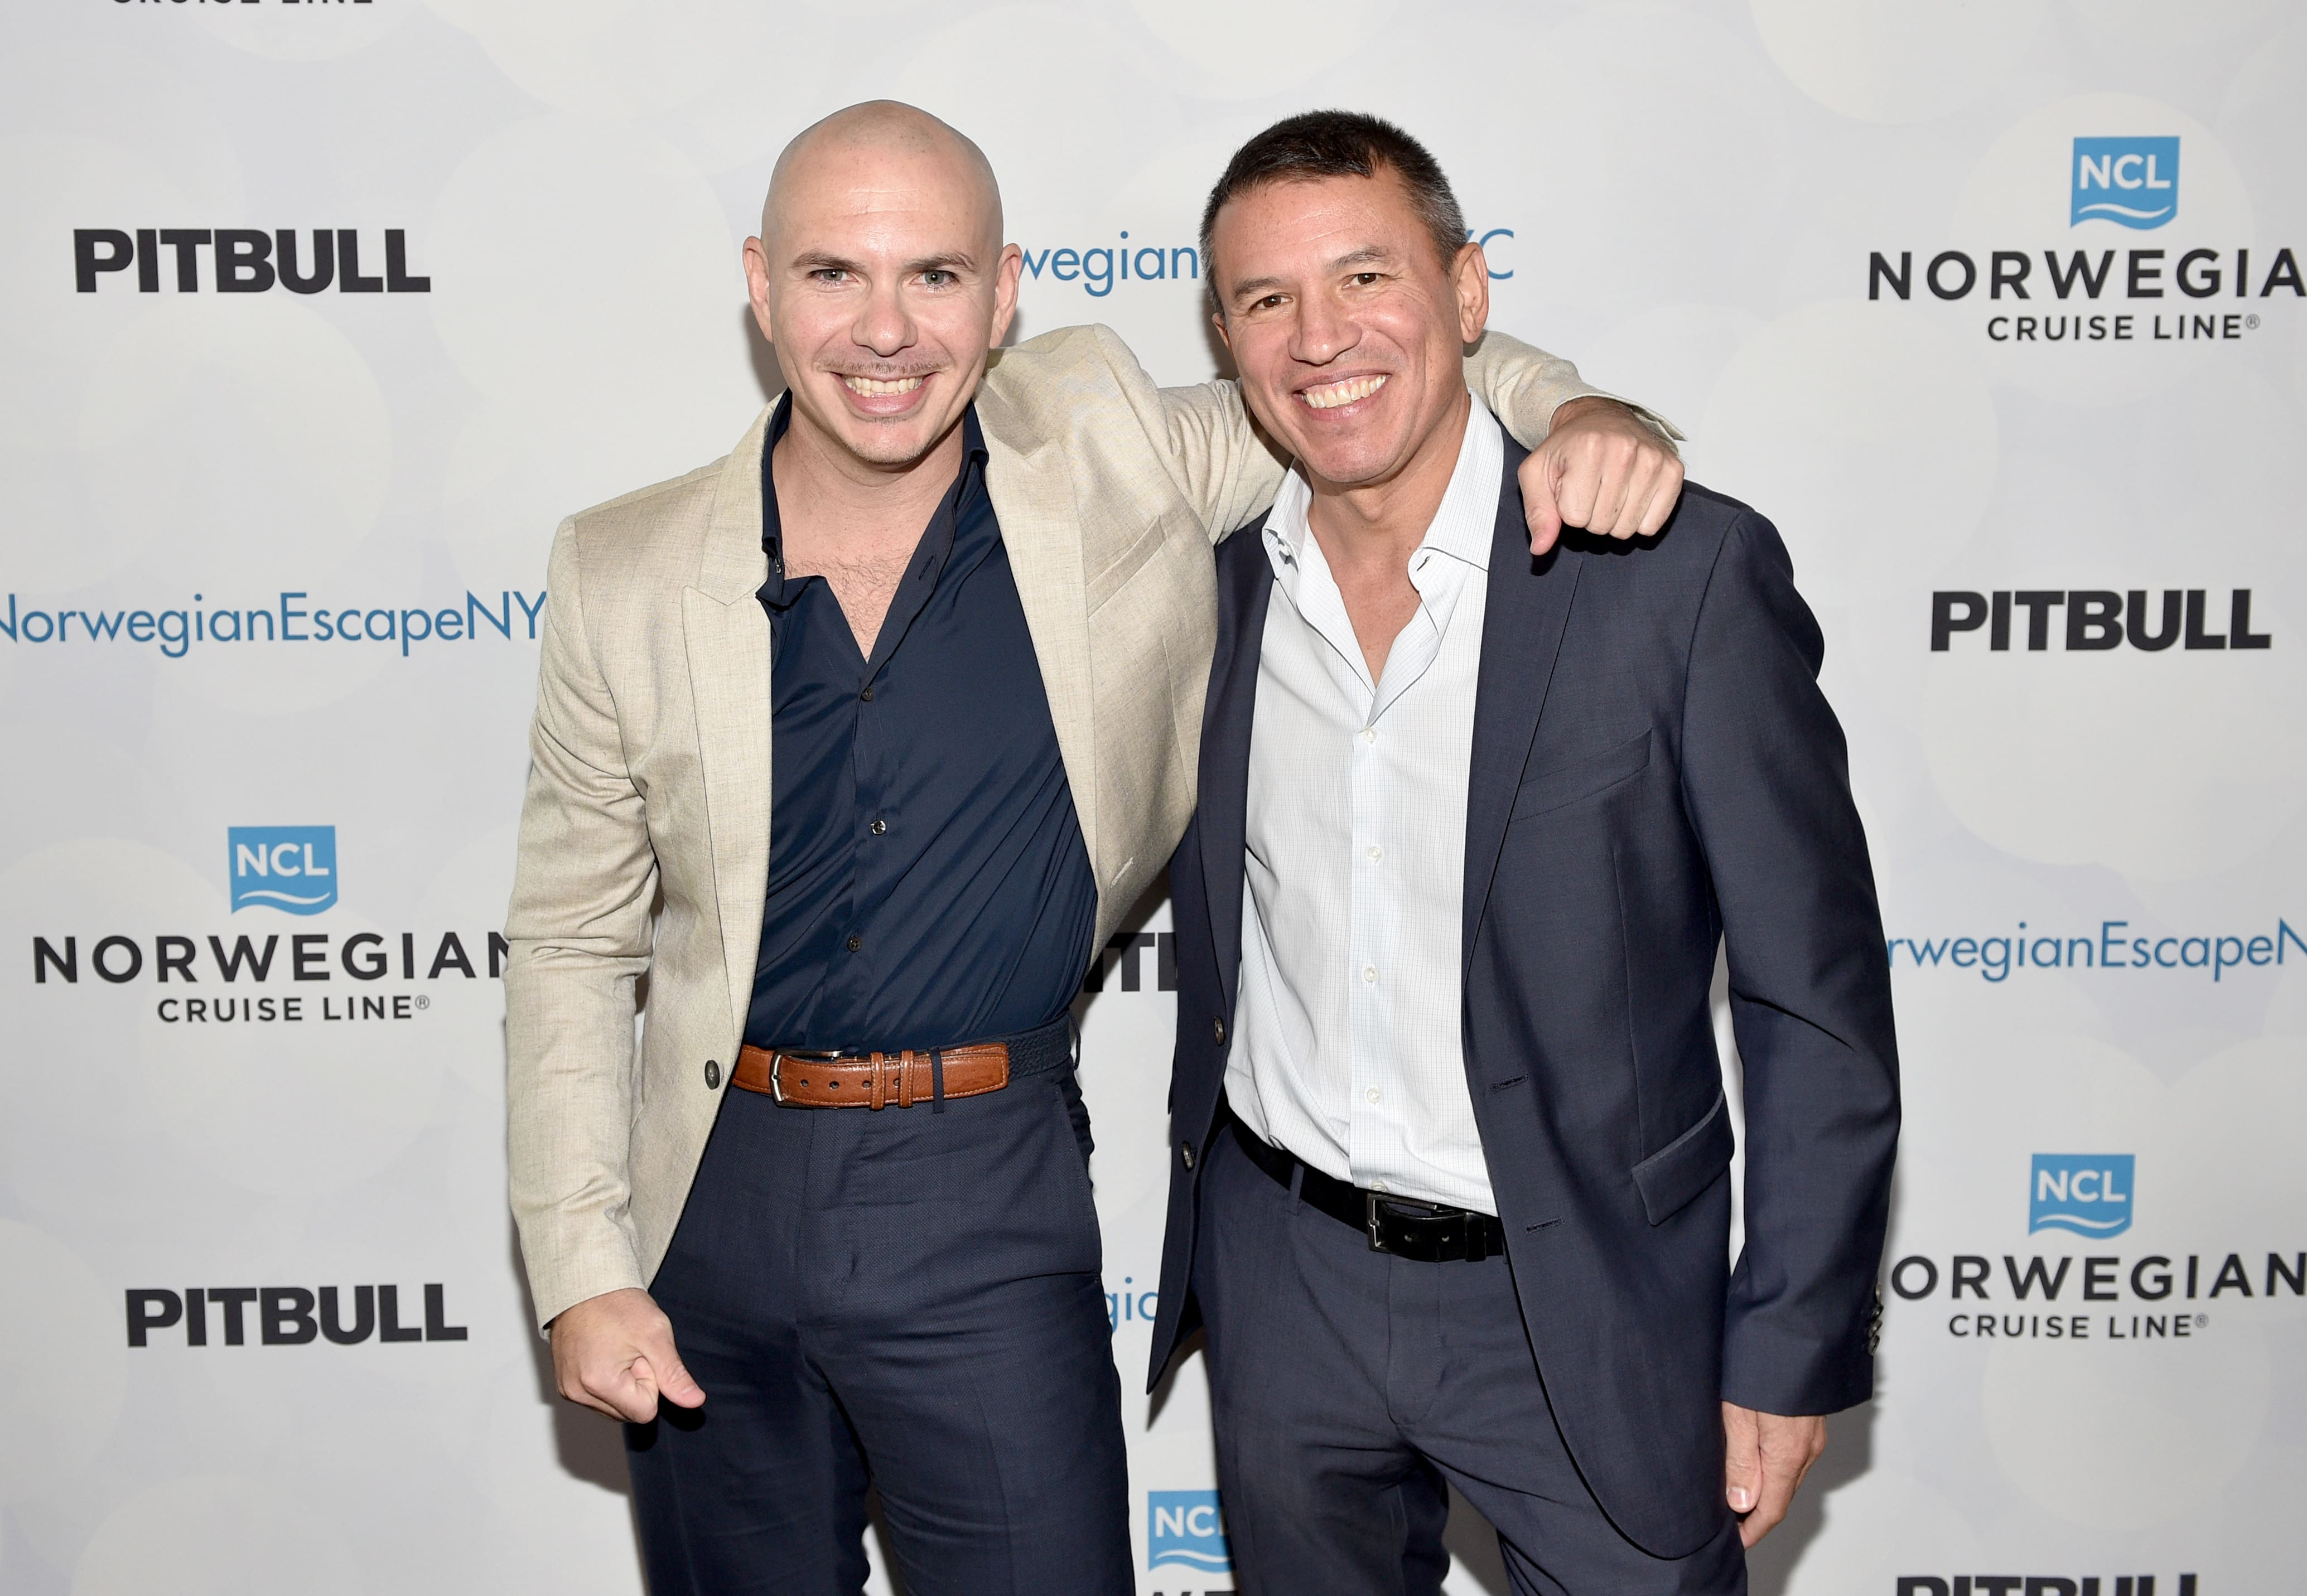 Norwegian Escape NYC Celebration with Pitbull